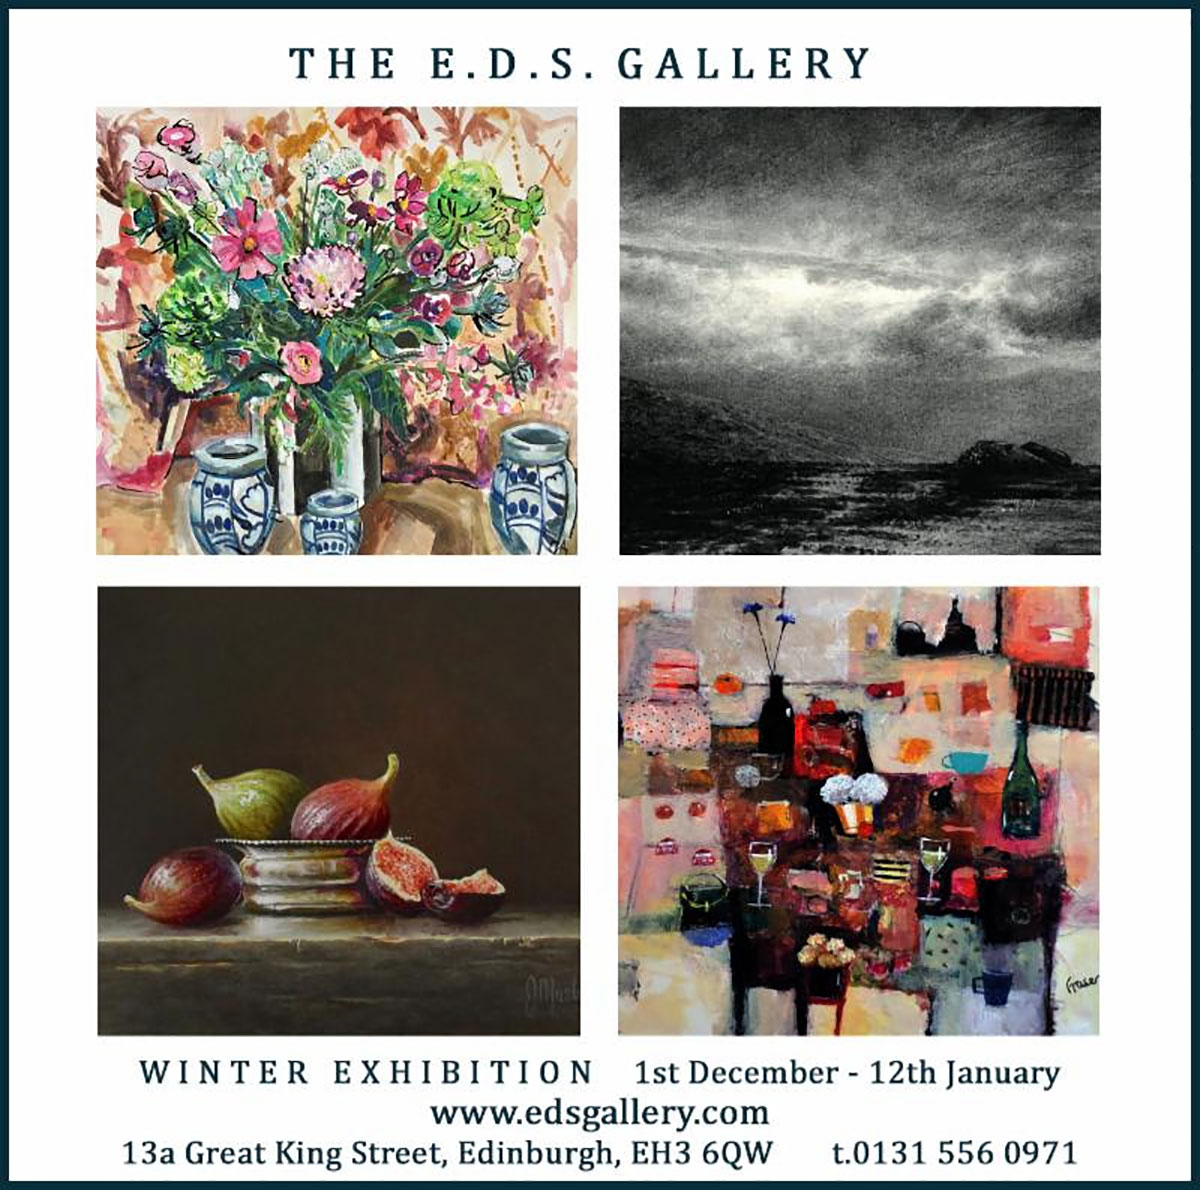 E.D.S. Gallery: Winter Exhibition